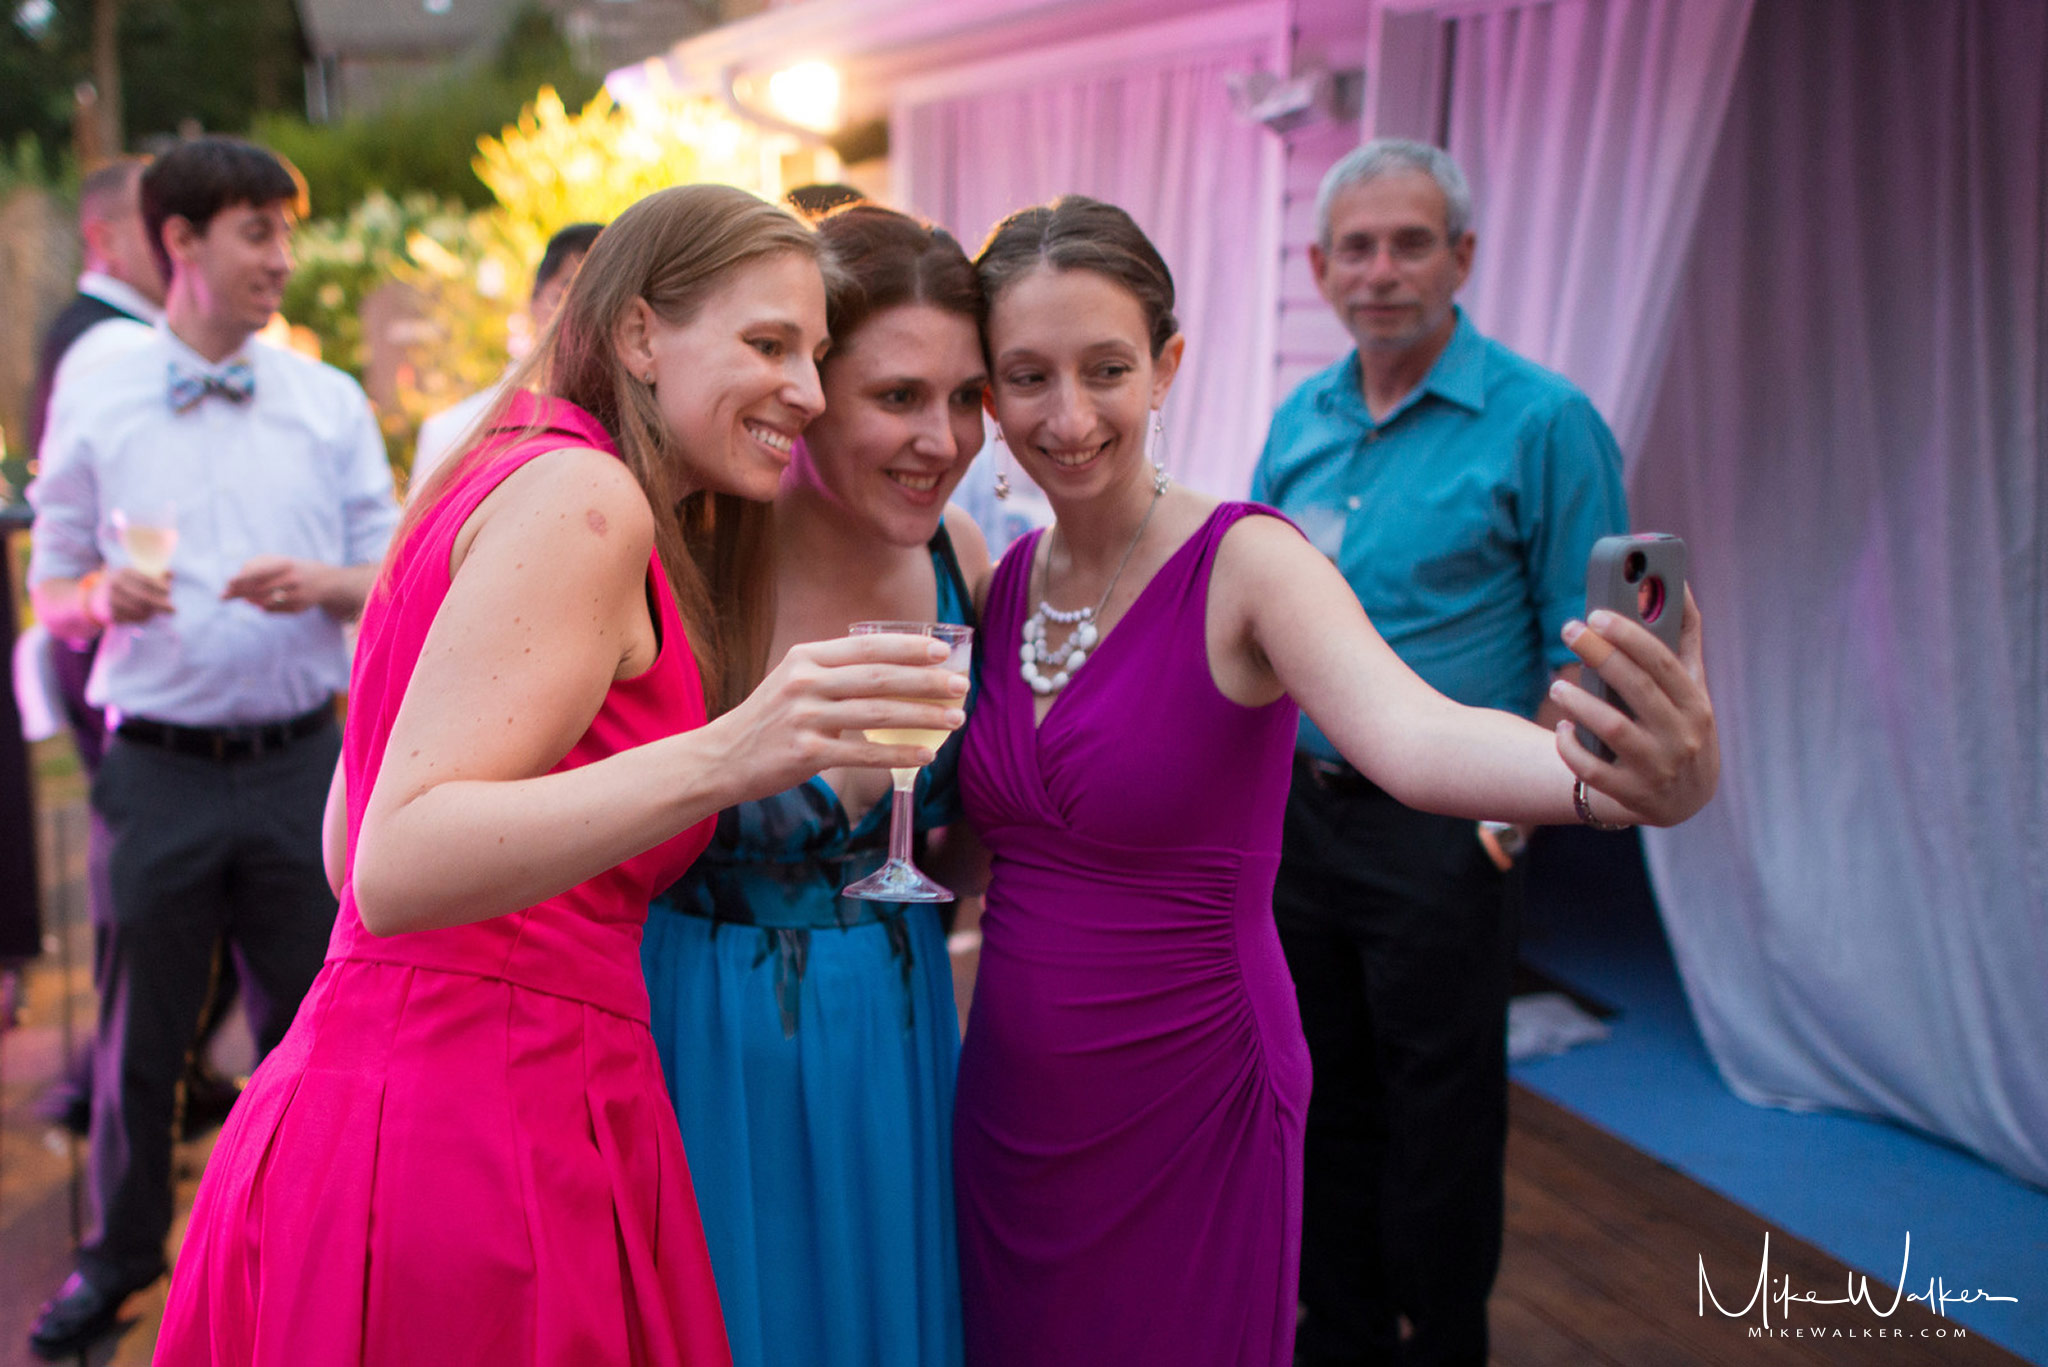 Group of women taking a selfie at a wedding. Wedding photography by Mike Walker.